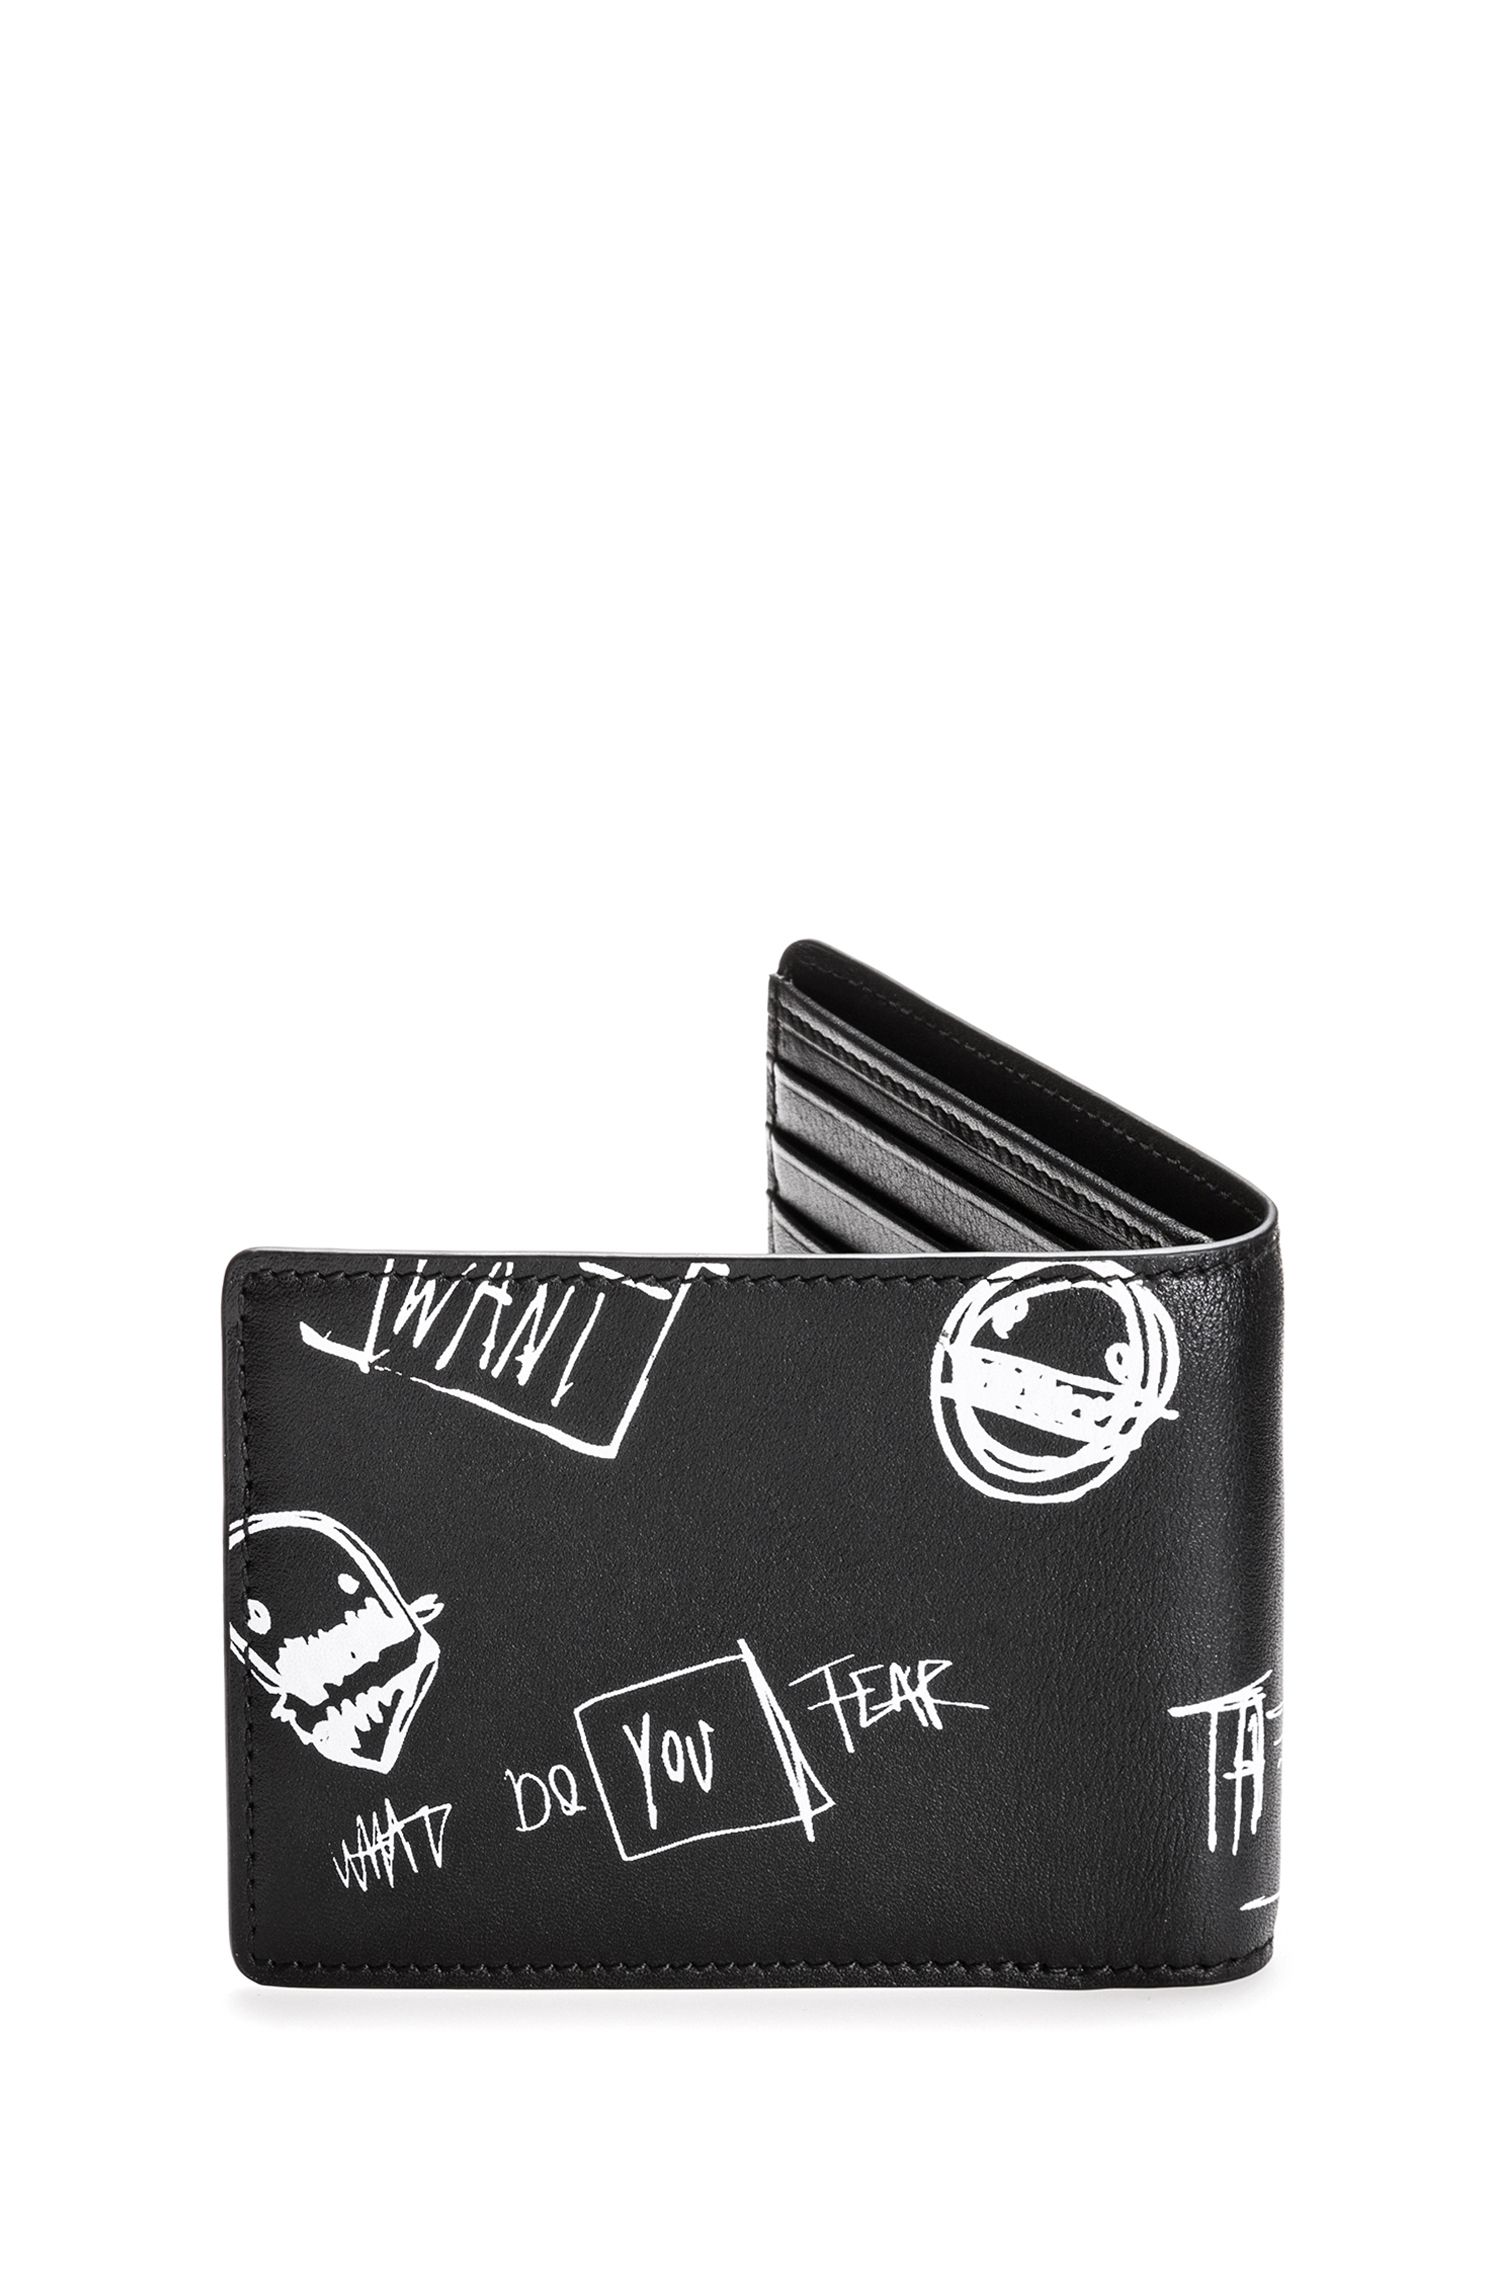 Bifold leather wallet with graffiti artwork